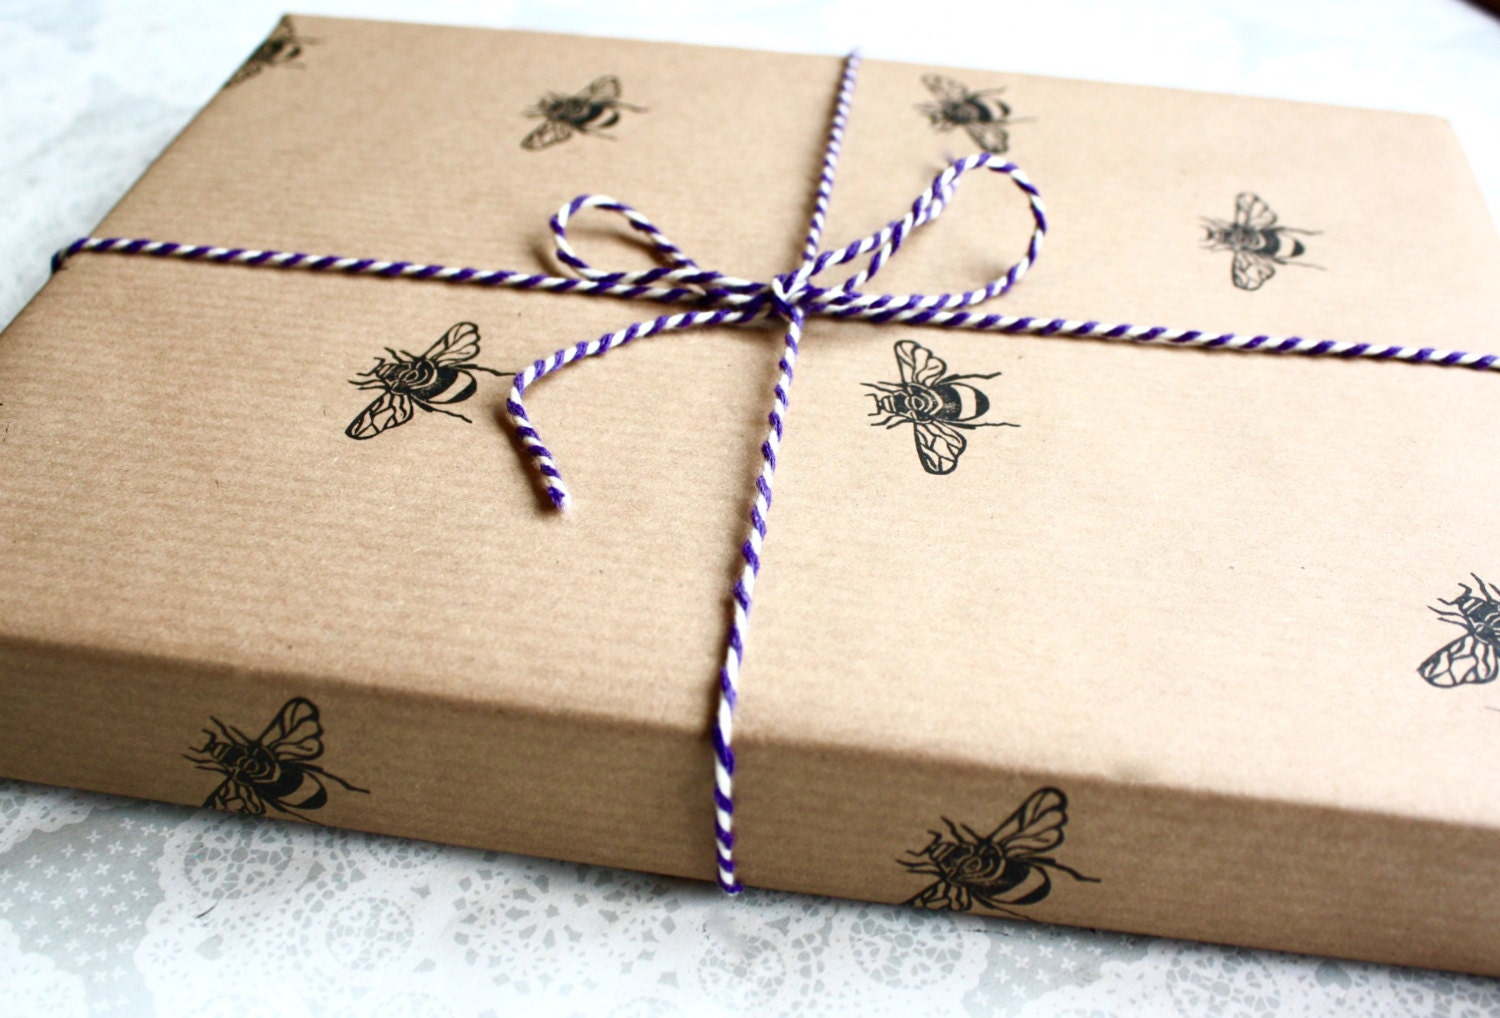 Bumble bee wrapping paper | Gift wrap sheet | Insect ...